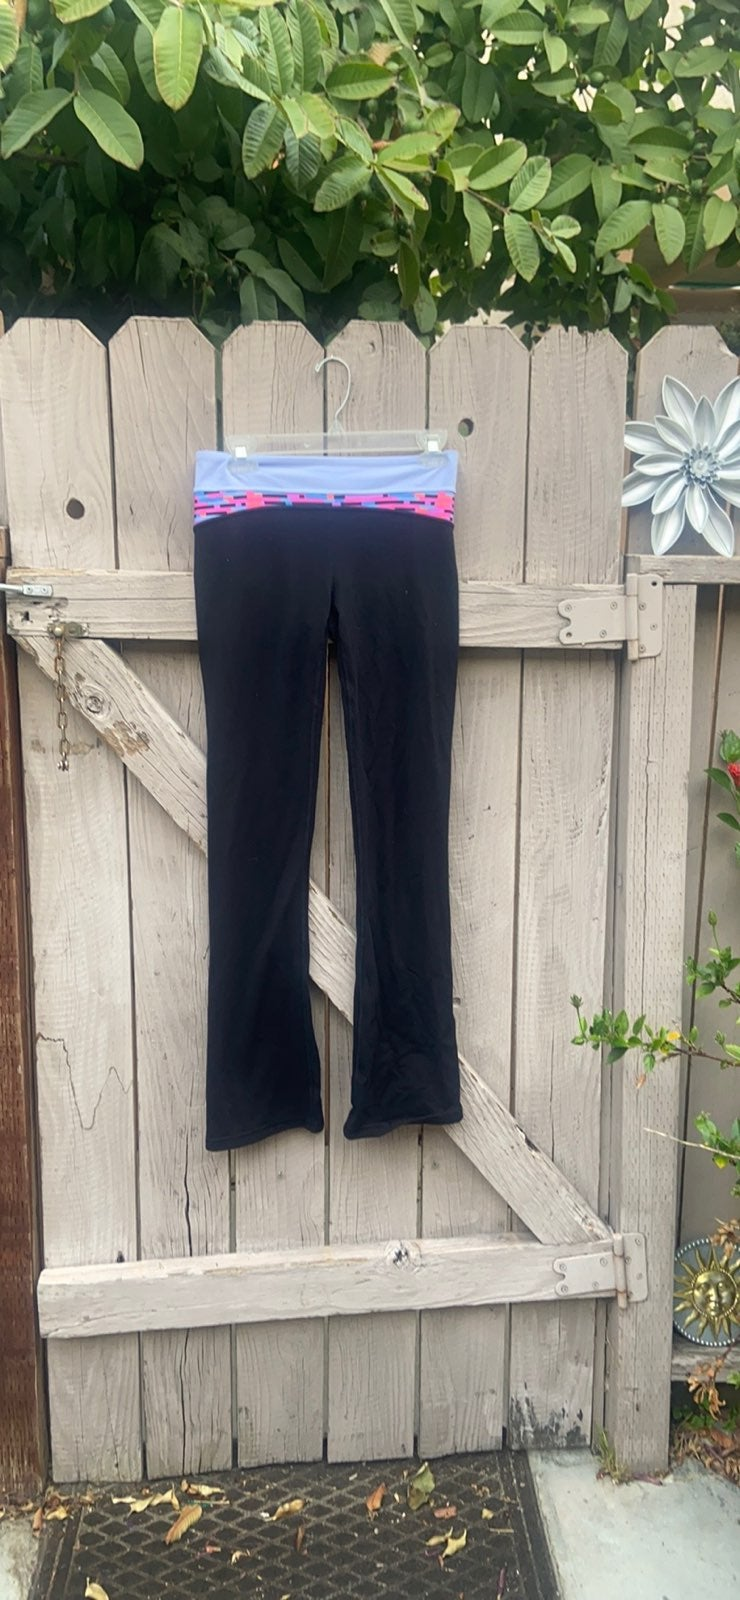 Ivivva Athletica Black workout pants